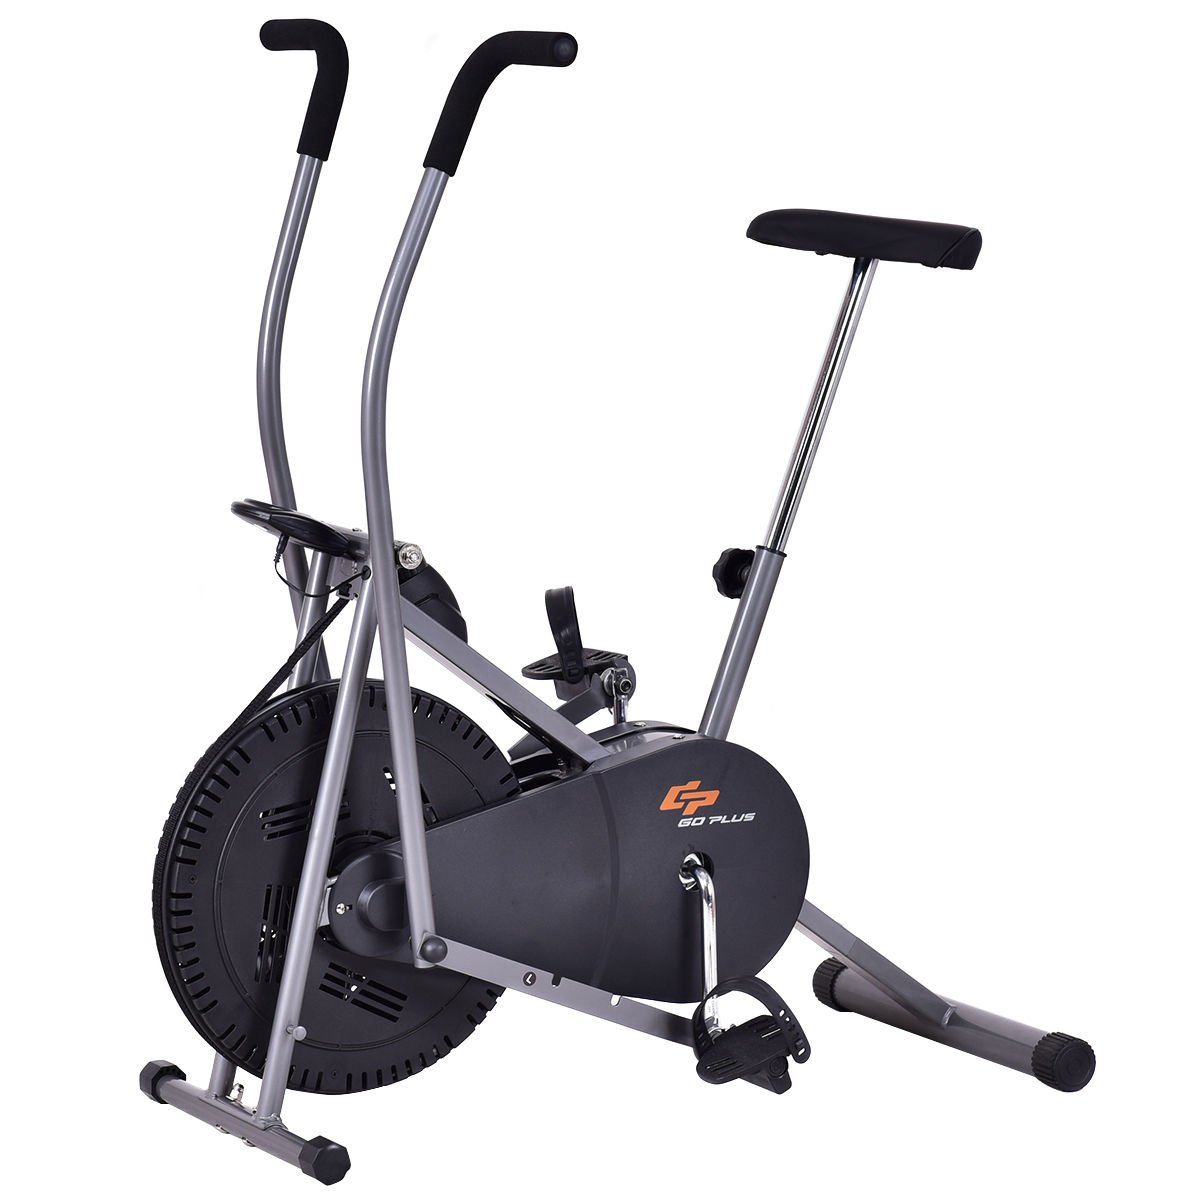 GoPlus 2 in 1 Elliptical